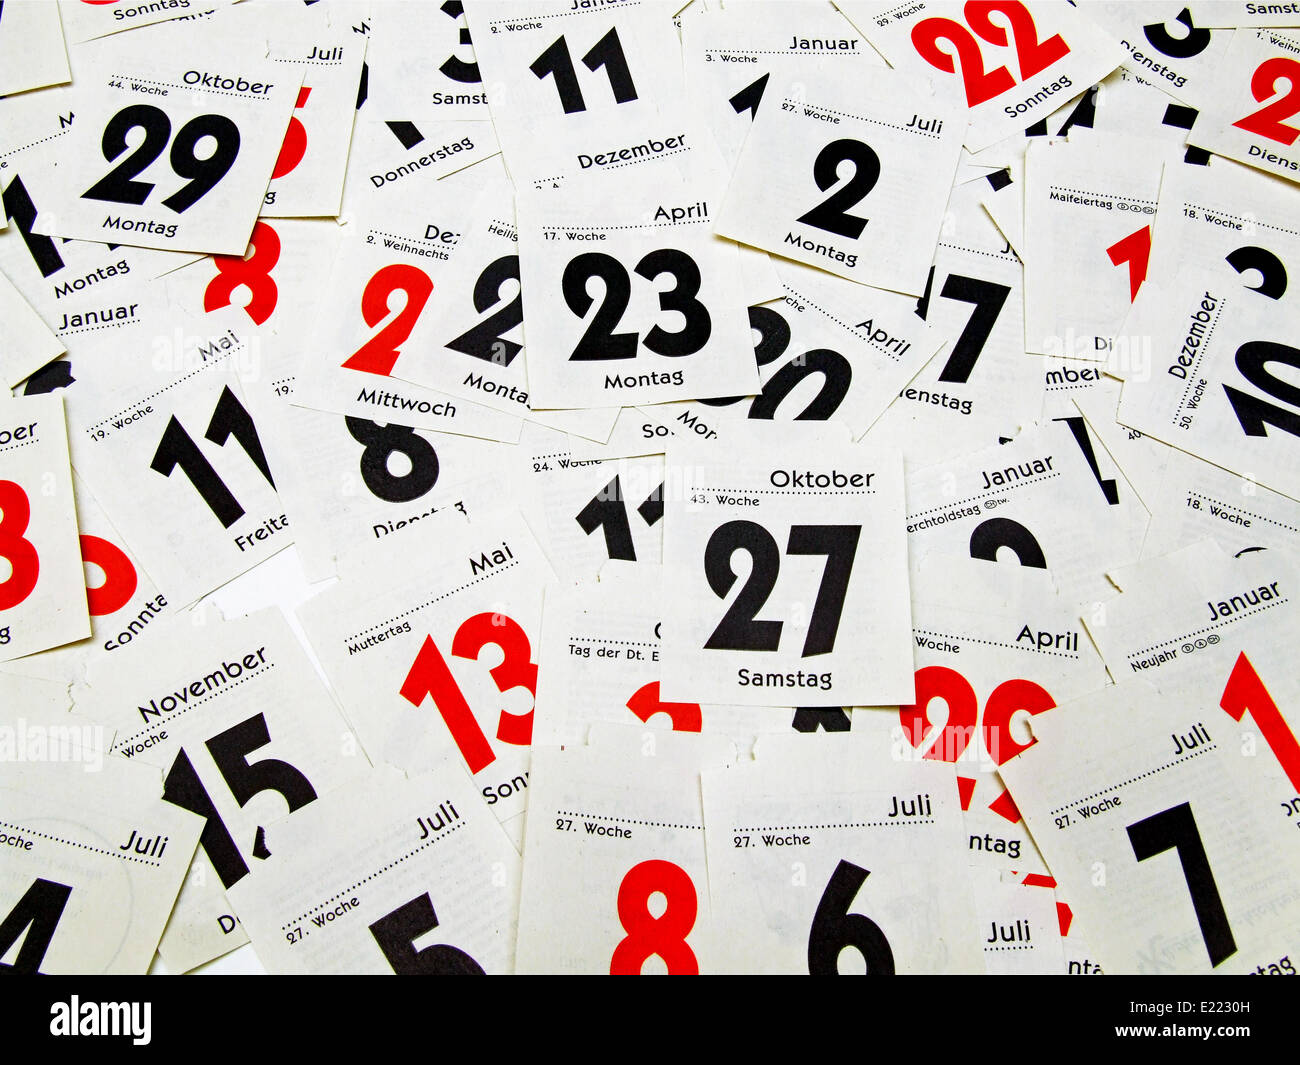 sheet calendar - Stock Image